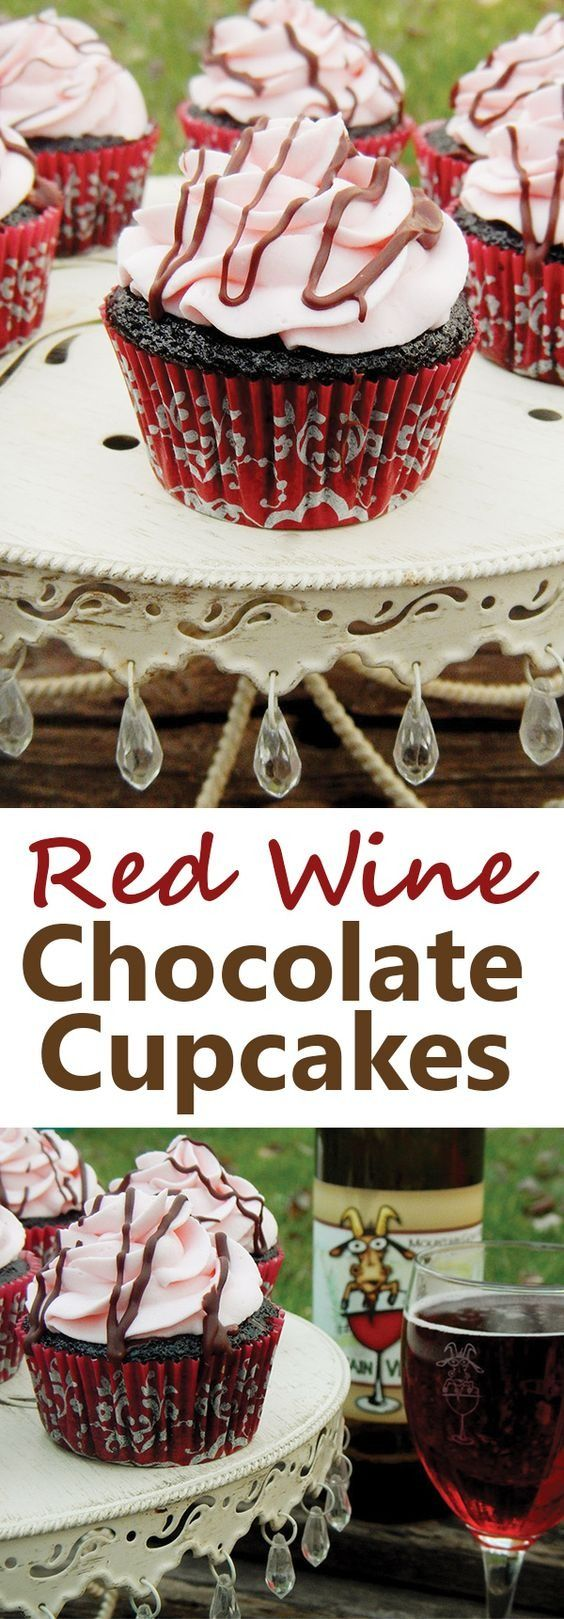 Pour a glass of red wine for your sweetheart, and add the rest to this chocolate cupcake batter!  Check out these red wine chocolate cupcakes!